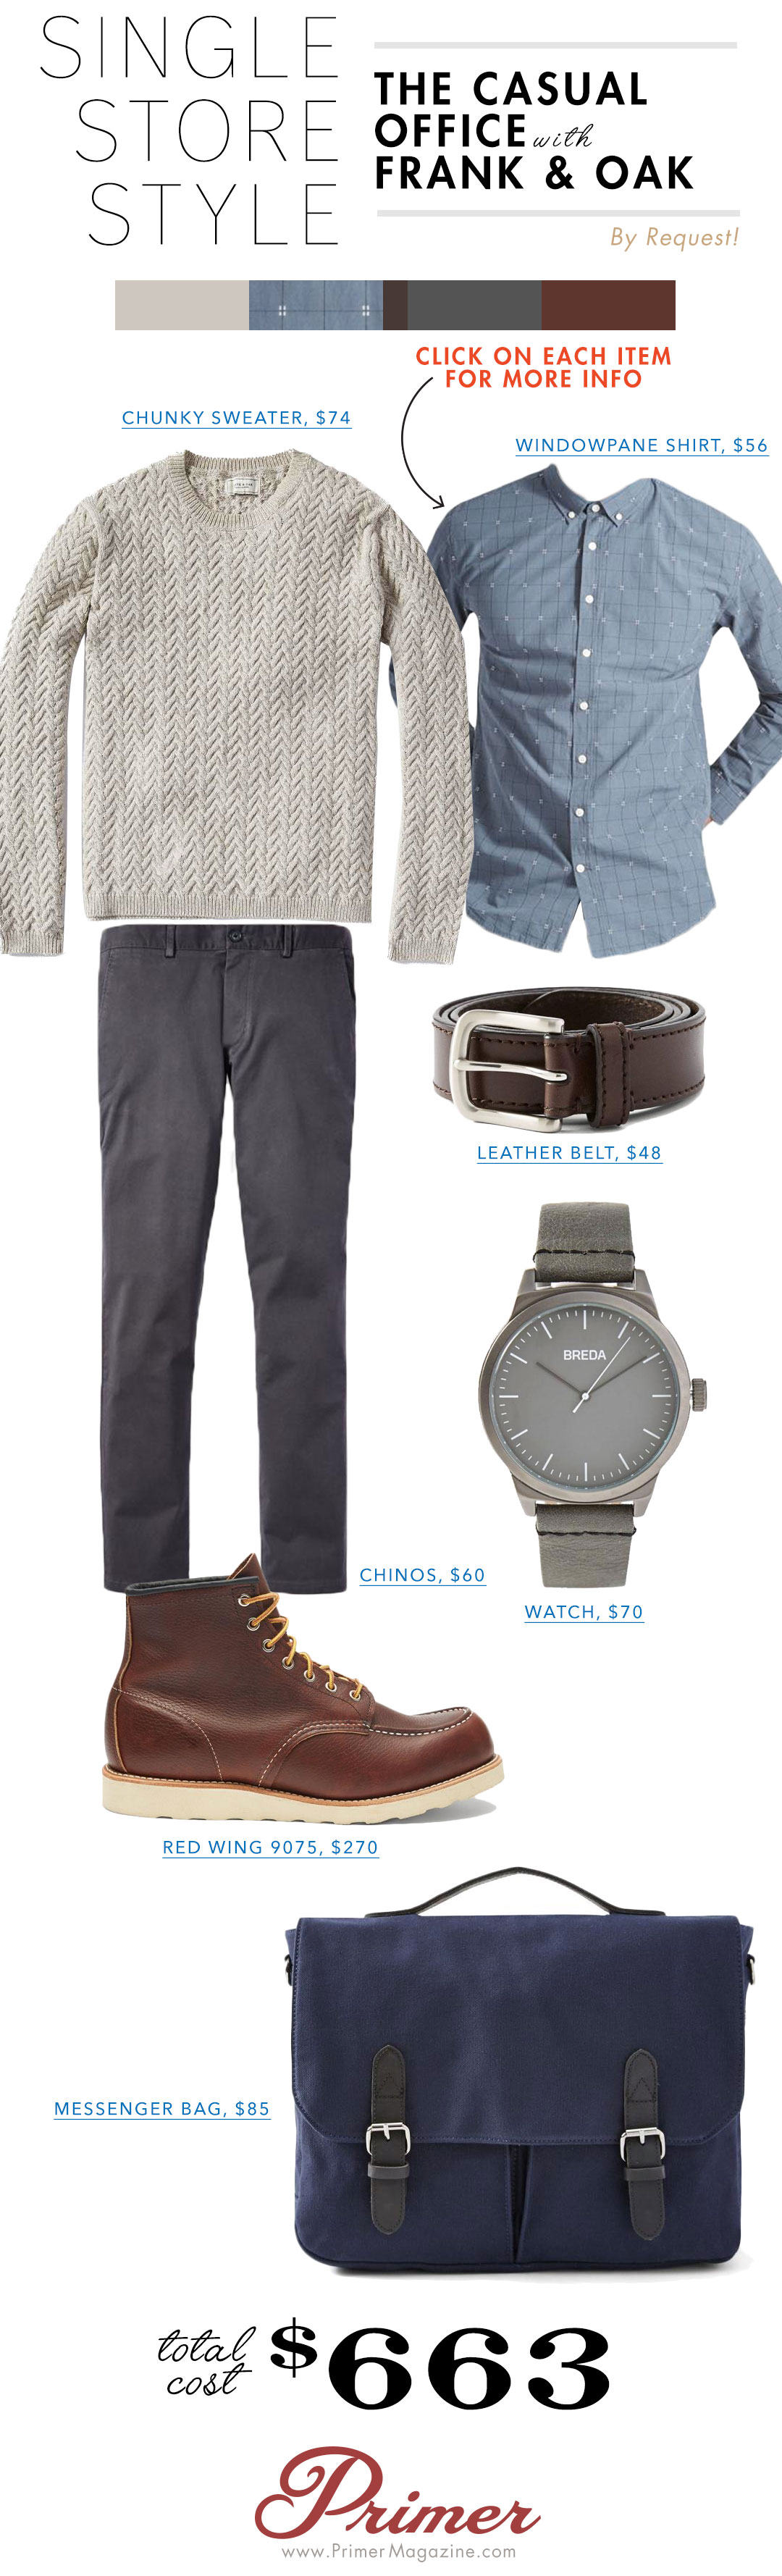 Single Store Style Frank and Oak - Gray sweater, blue shirt, gray pants and boots